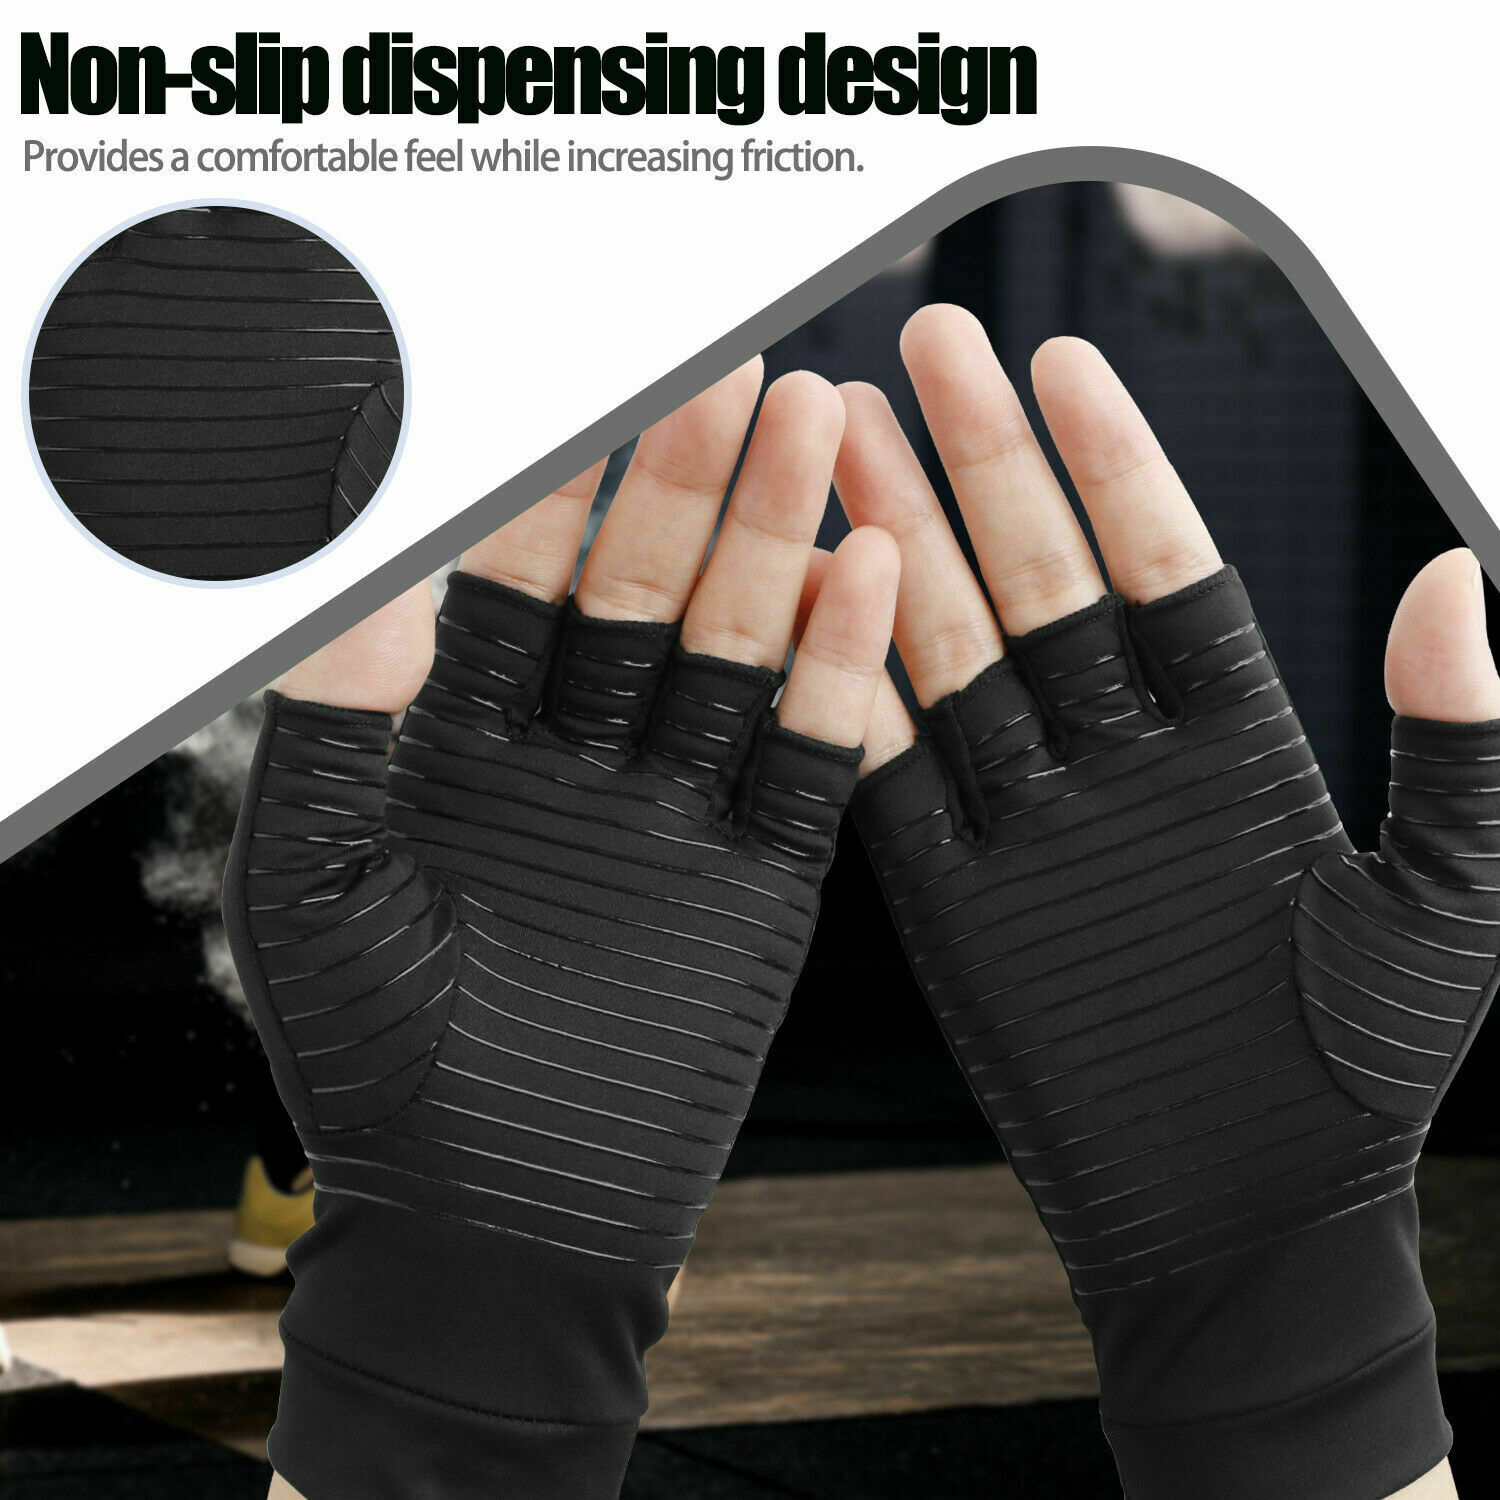 1/2x Copper Arthritis Compression Gloves Hand Guard Support Joint Pain Relief US - $9.99